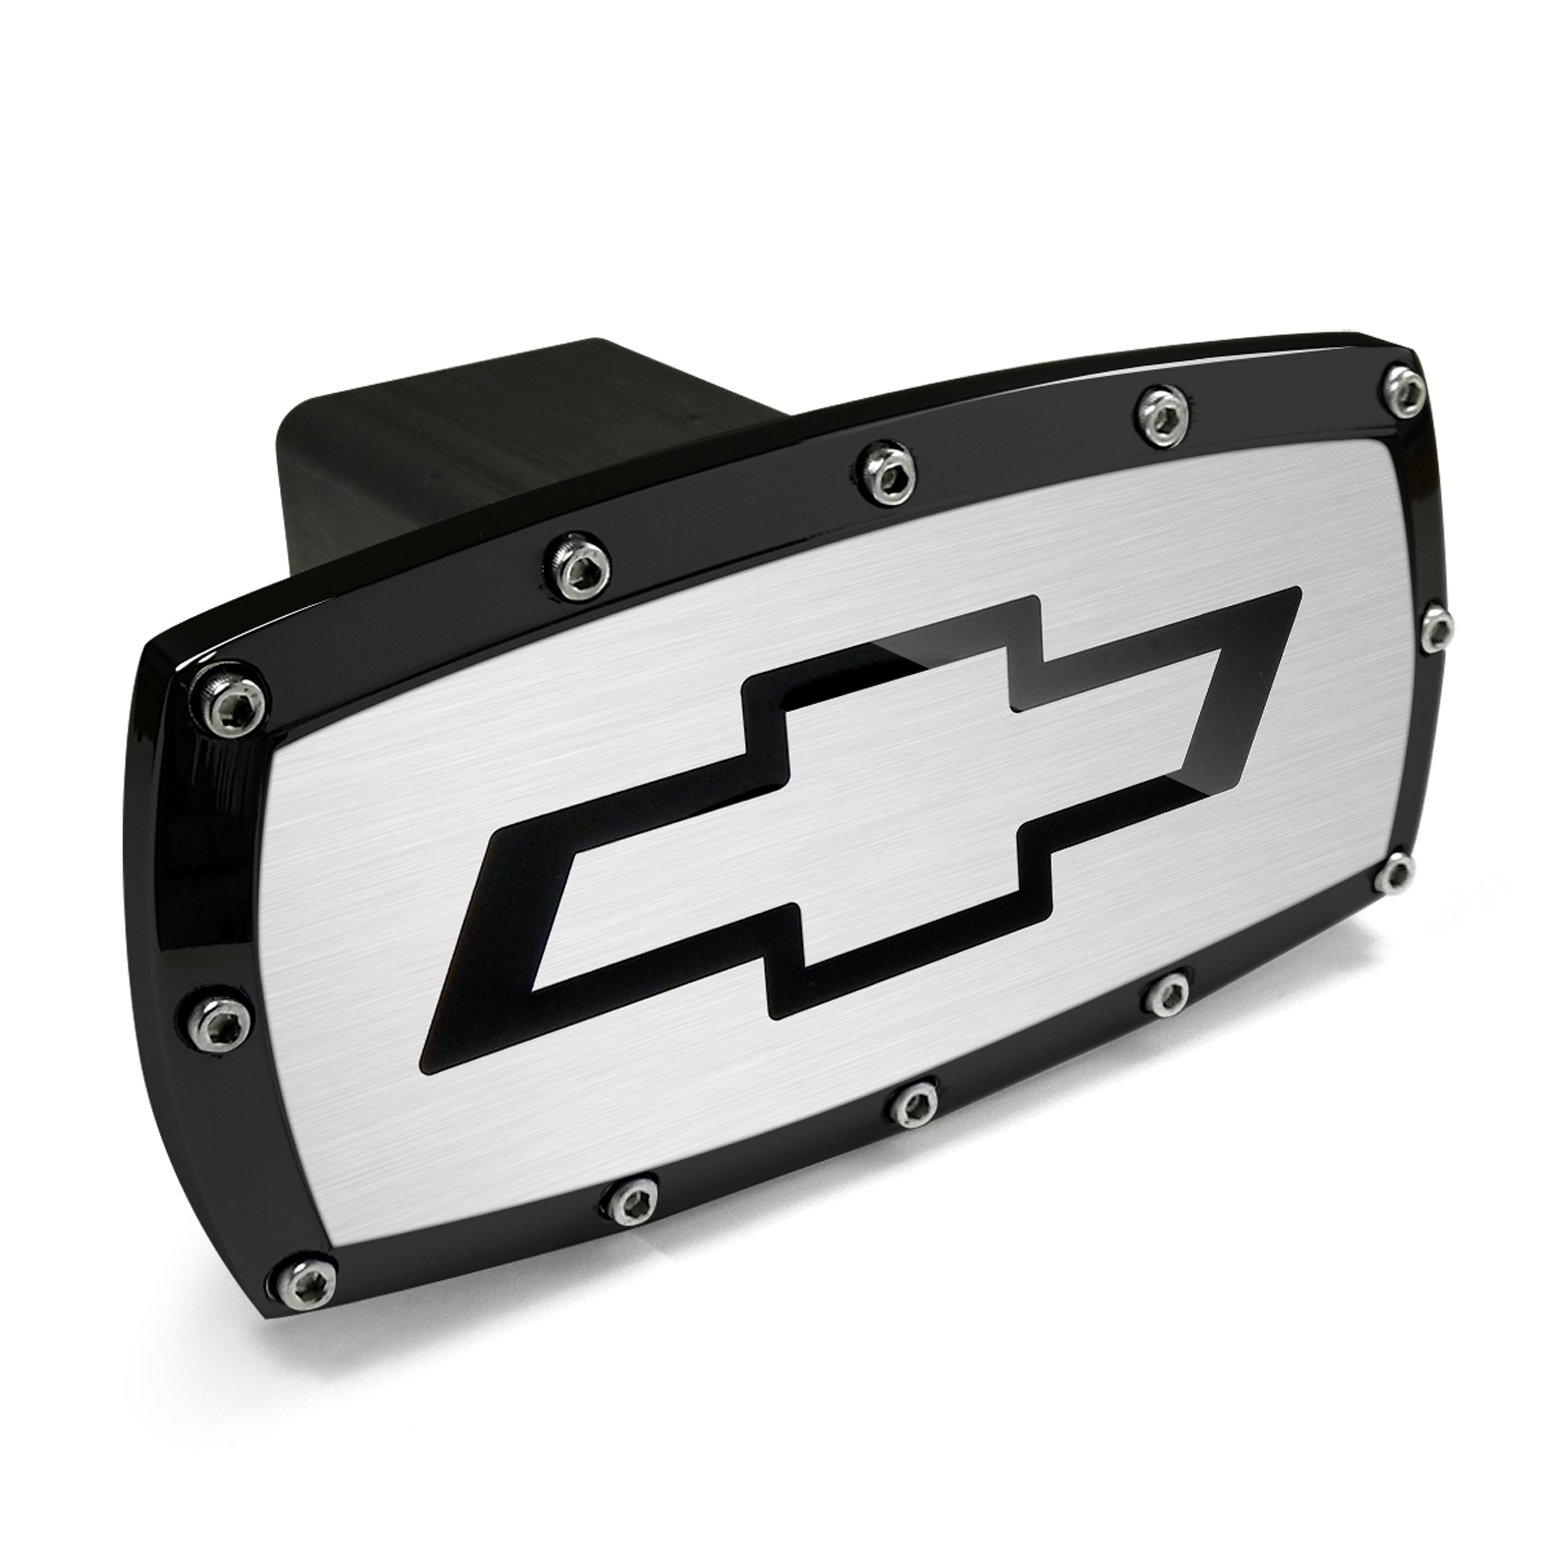 CarBeyondStore Chevrolet Black Trim Billet Aluminum Tow Hitch Cover by CarBeyondStore